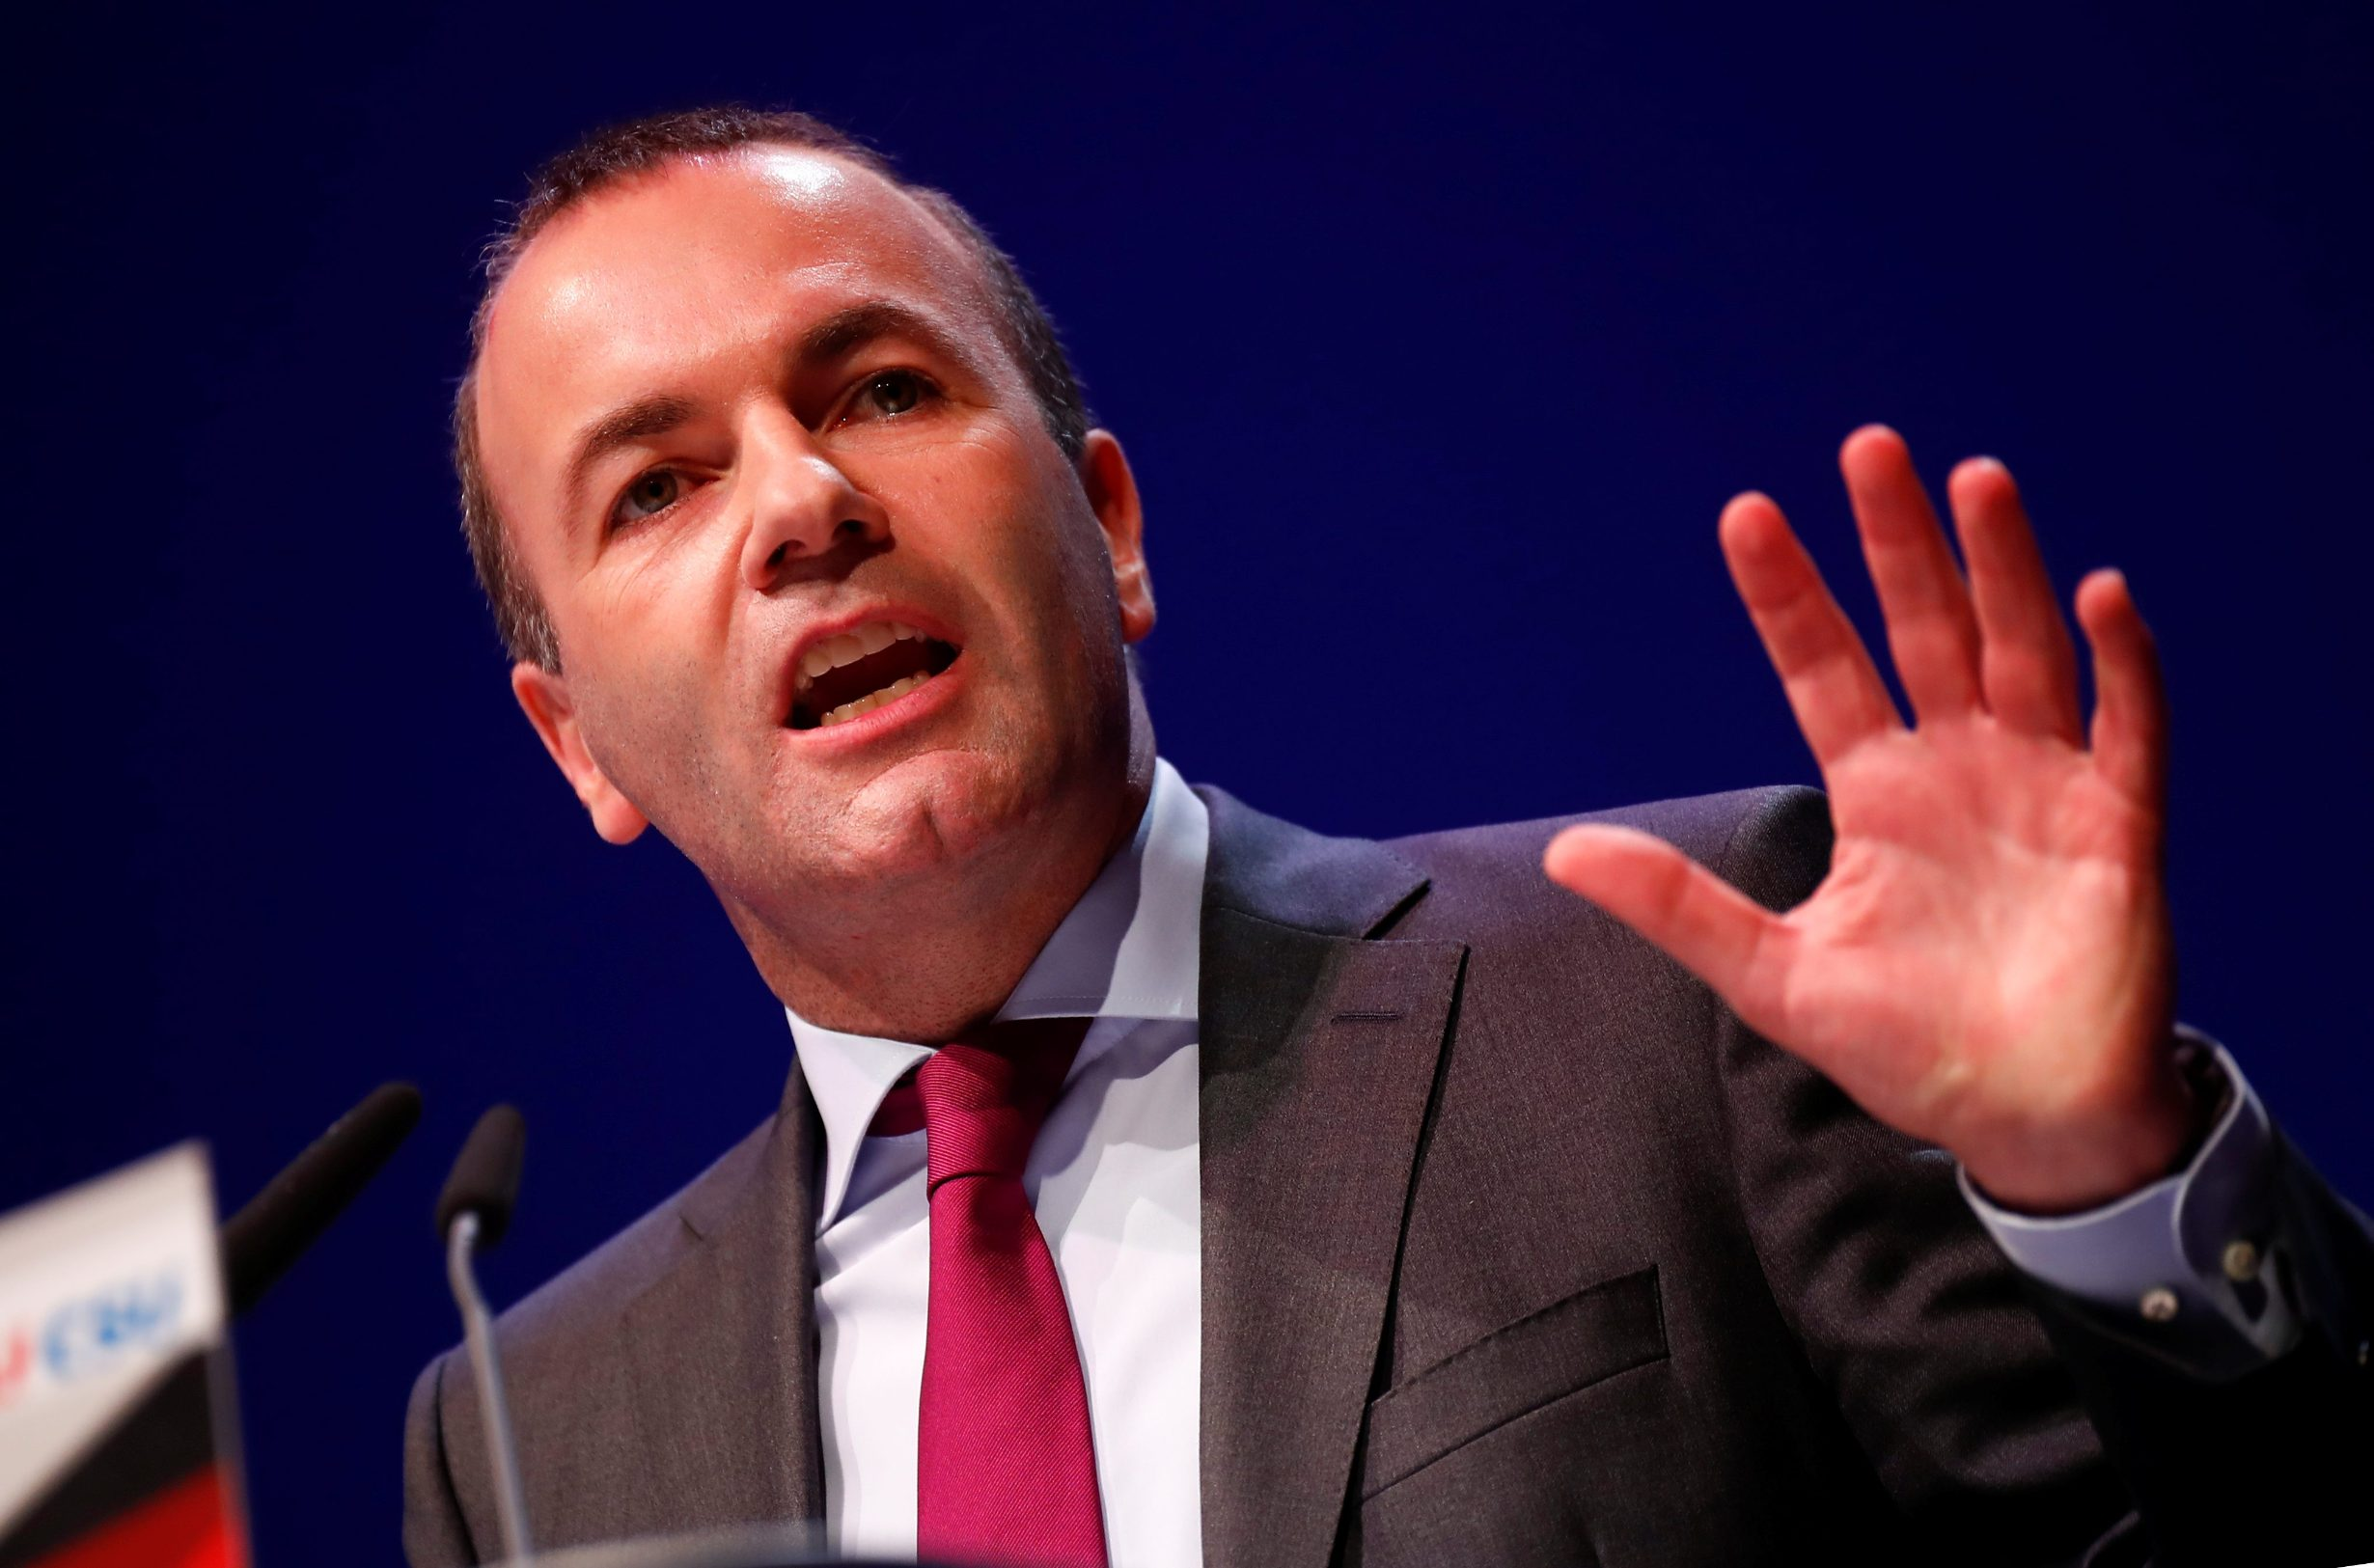 Manfred Weber, the EU candidate of the two German conservative sister parties Christian Democratic Union party CDU and Bavaria's Christian Social Union party CSU speaks during their kickoff campaign for the European elections in Muenster, Germany, April 27, 2019. REUTERS/Wolfgang Rattay